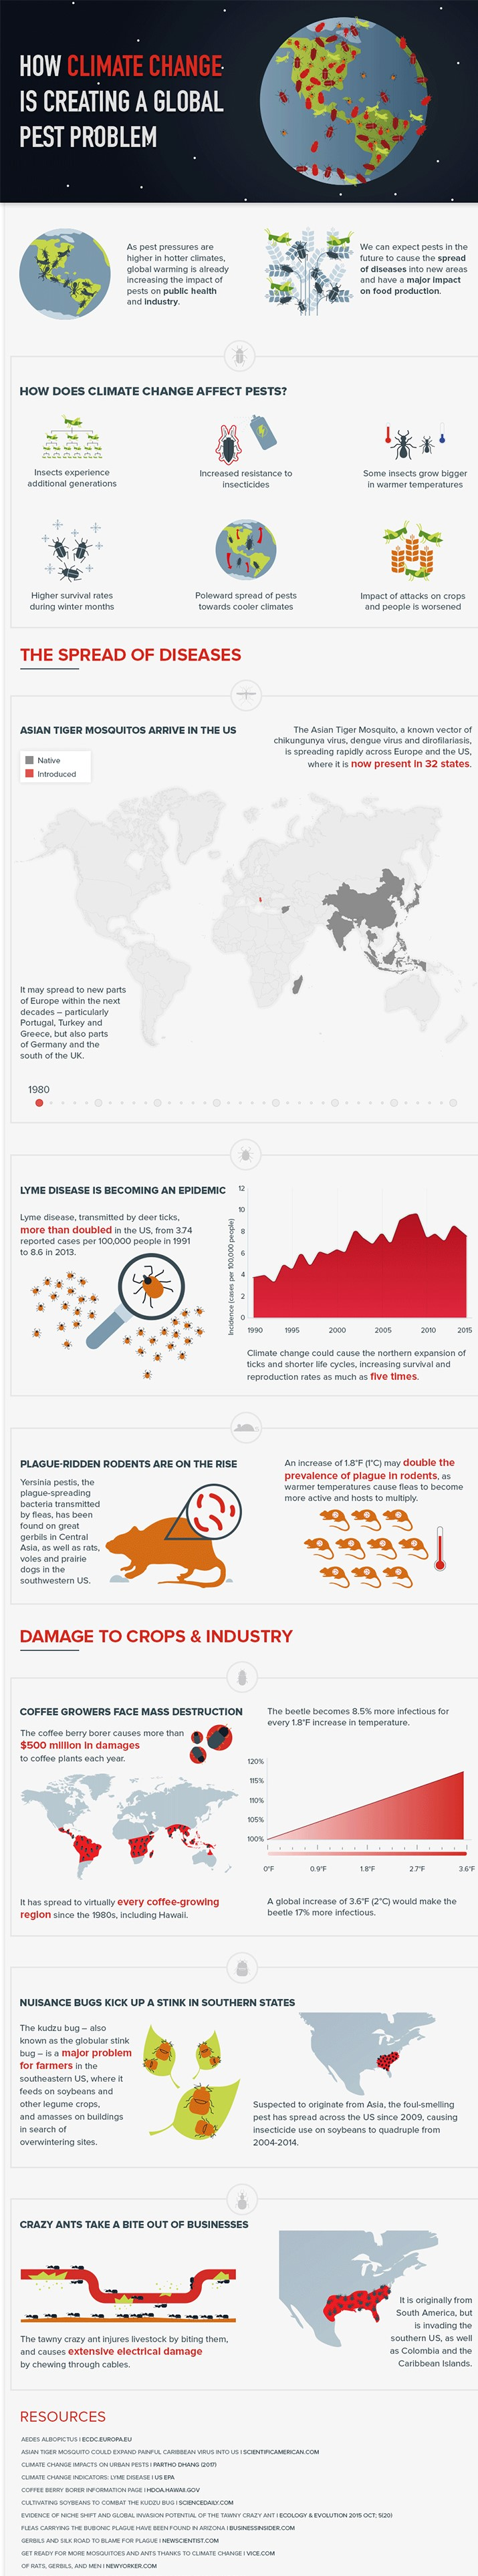 Infographic on how climate change is creating a global pest problem